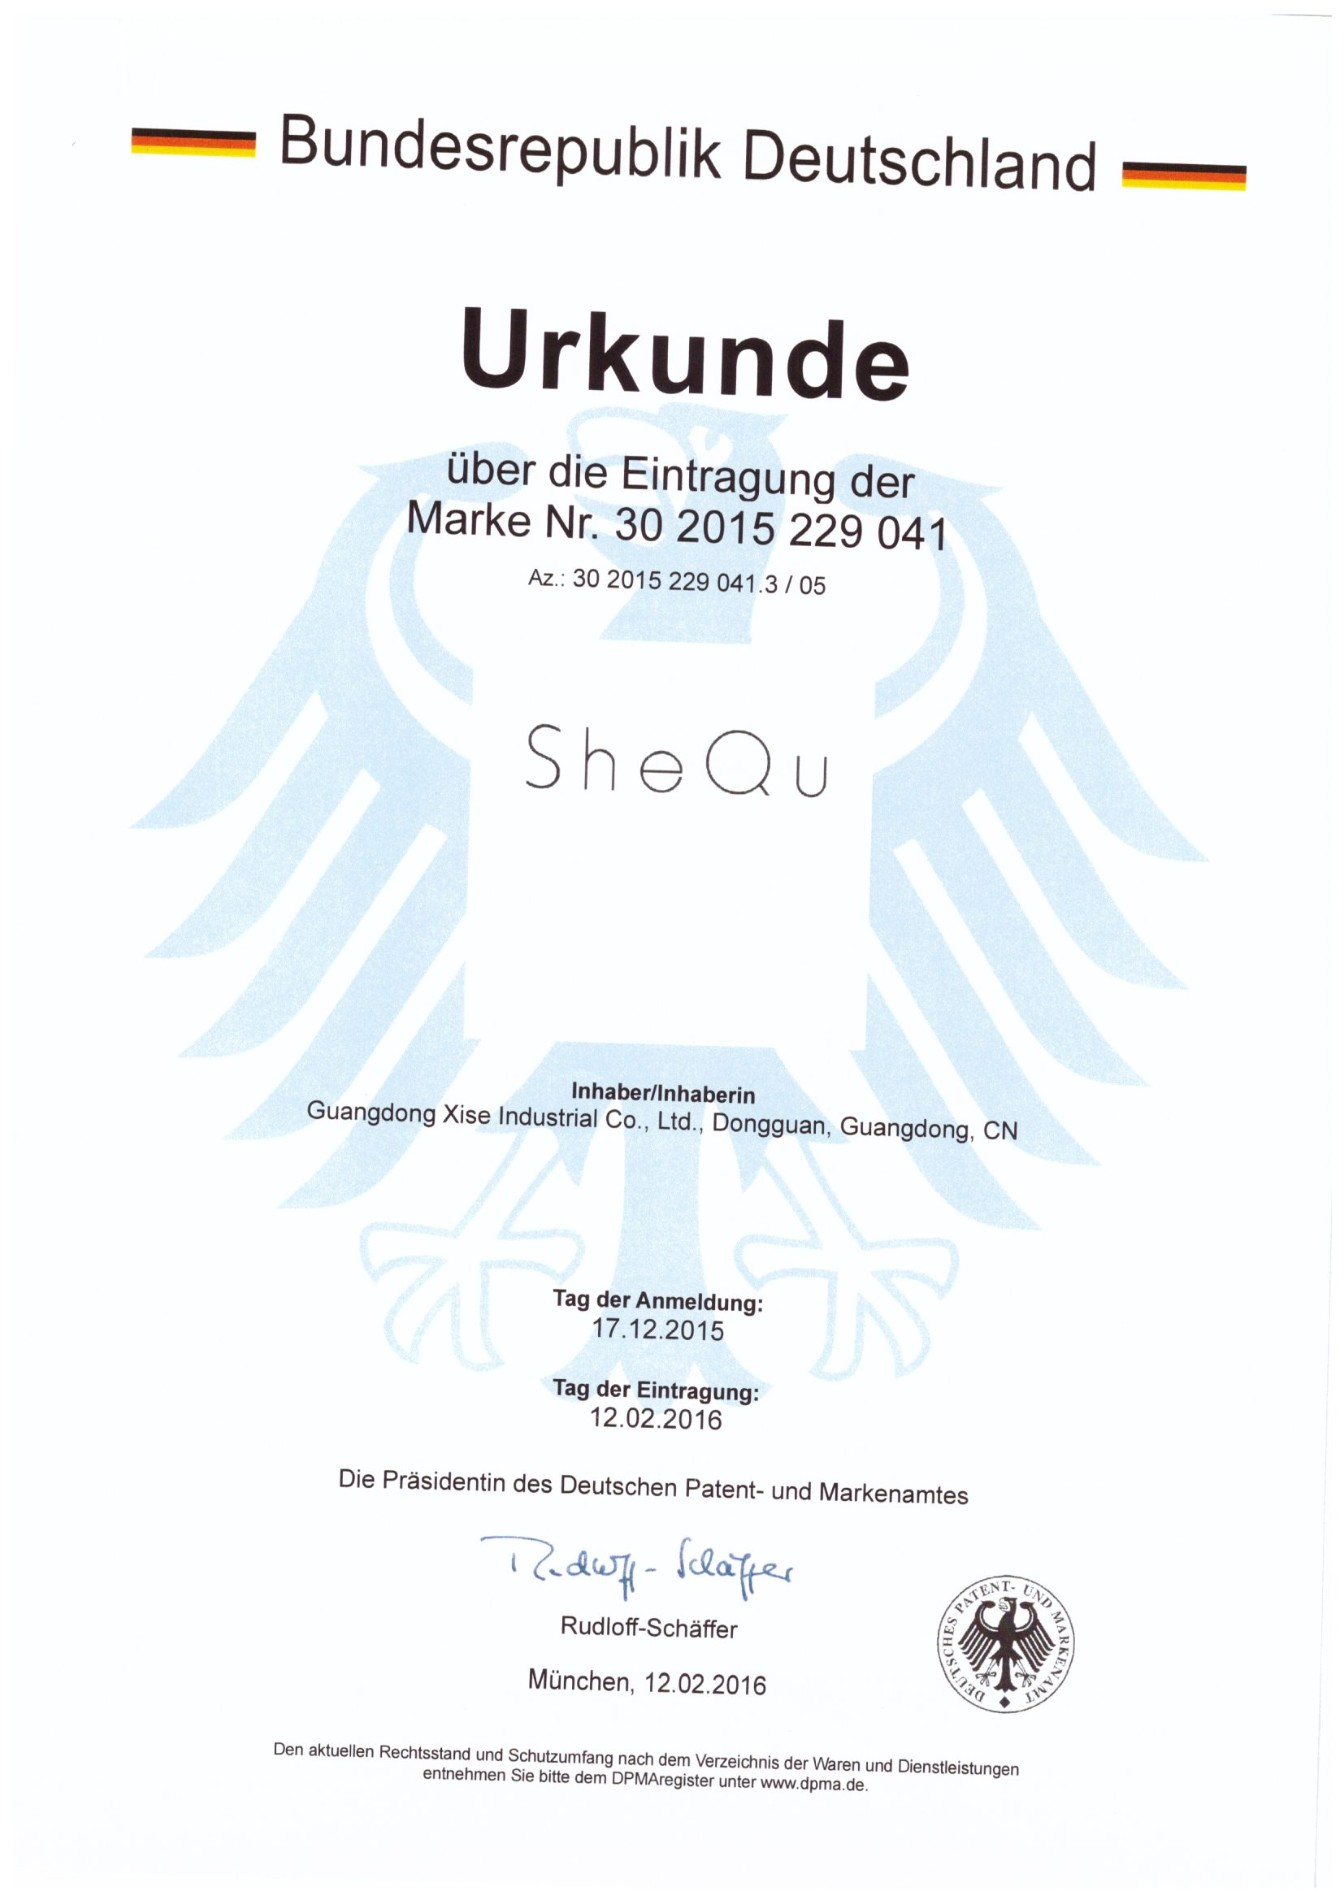 Certificate of Trademark Registration from Germany